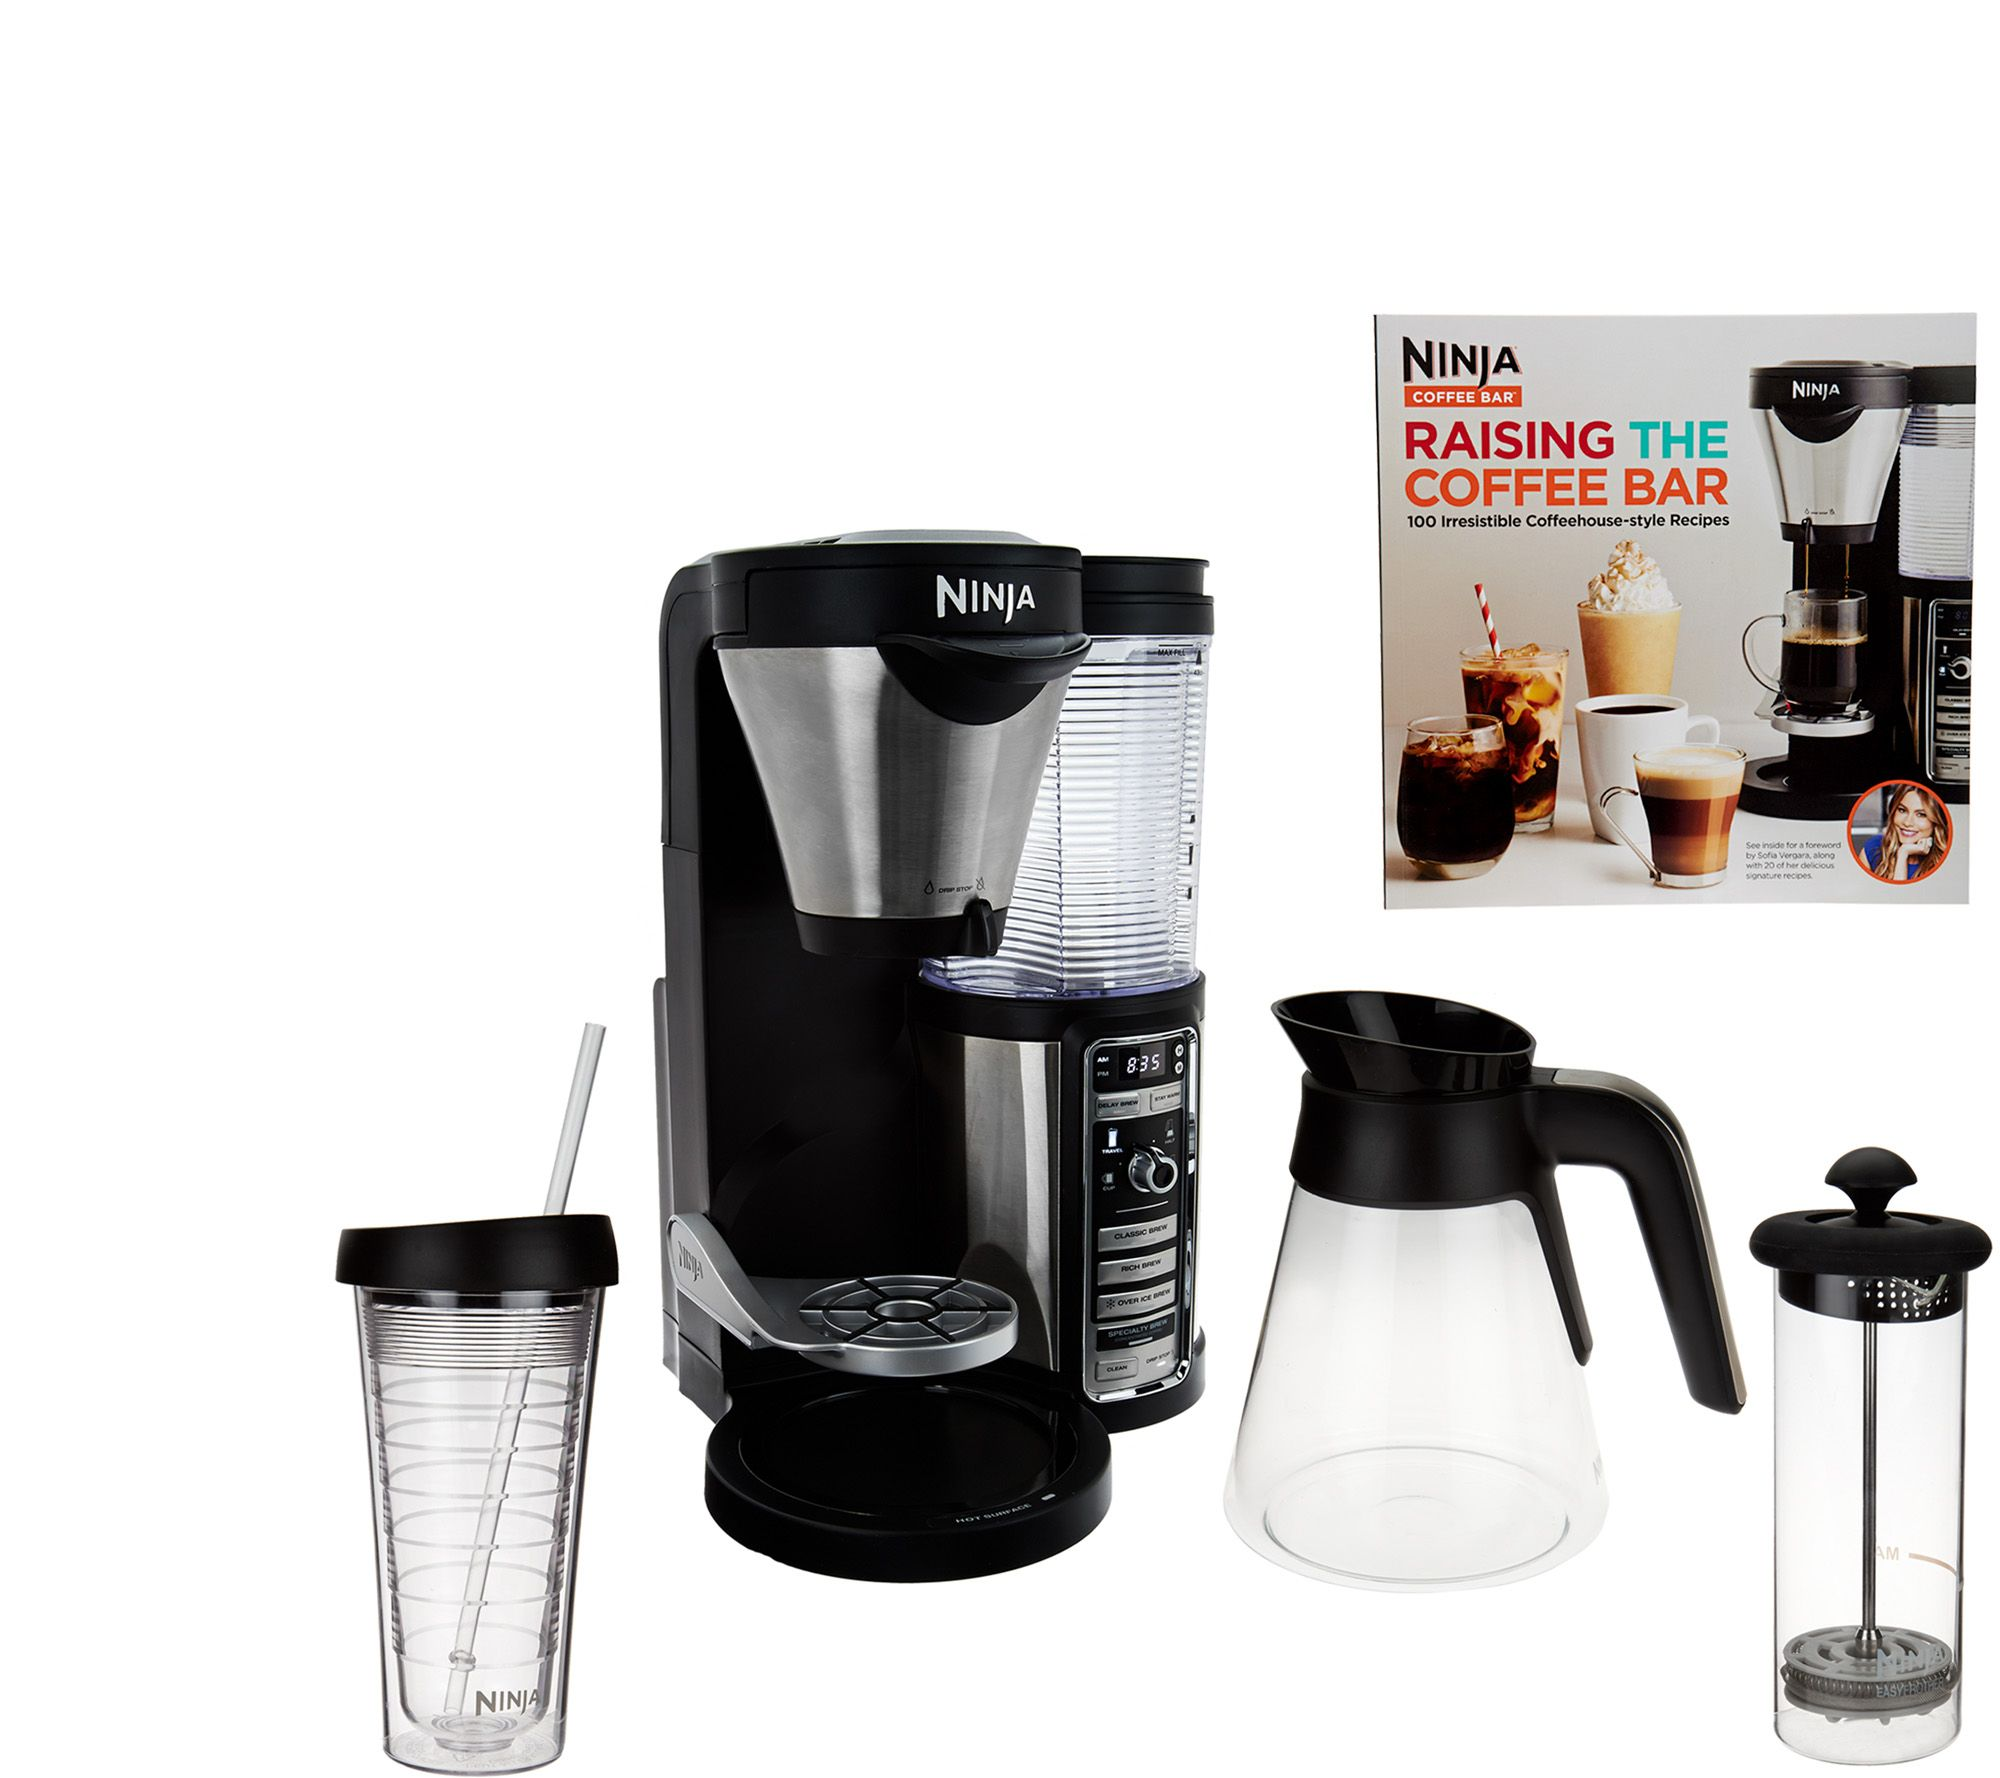 Ninja Coffee Maker Instructions : Ninja Coffee Bar Auto-iQ Coffee Maker w/ Glass Carafe & Recipe Book - Page 1 QVC.com